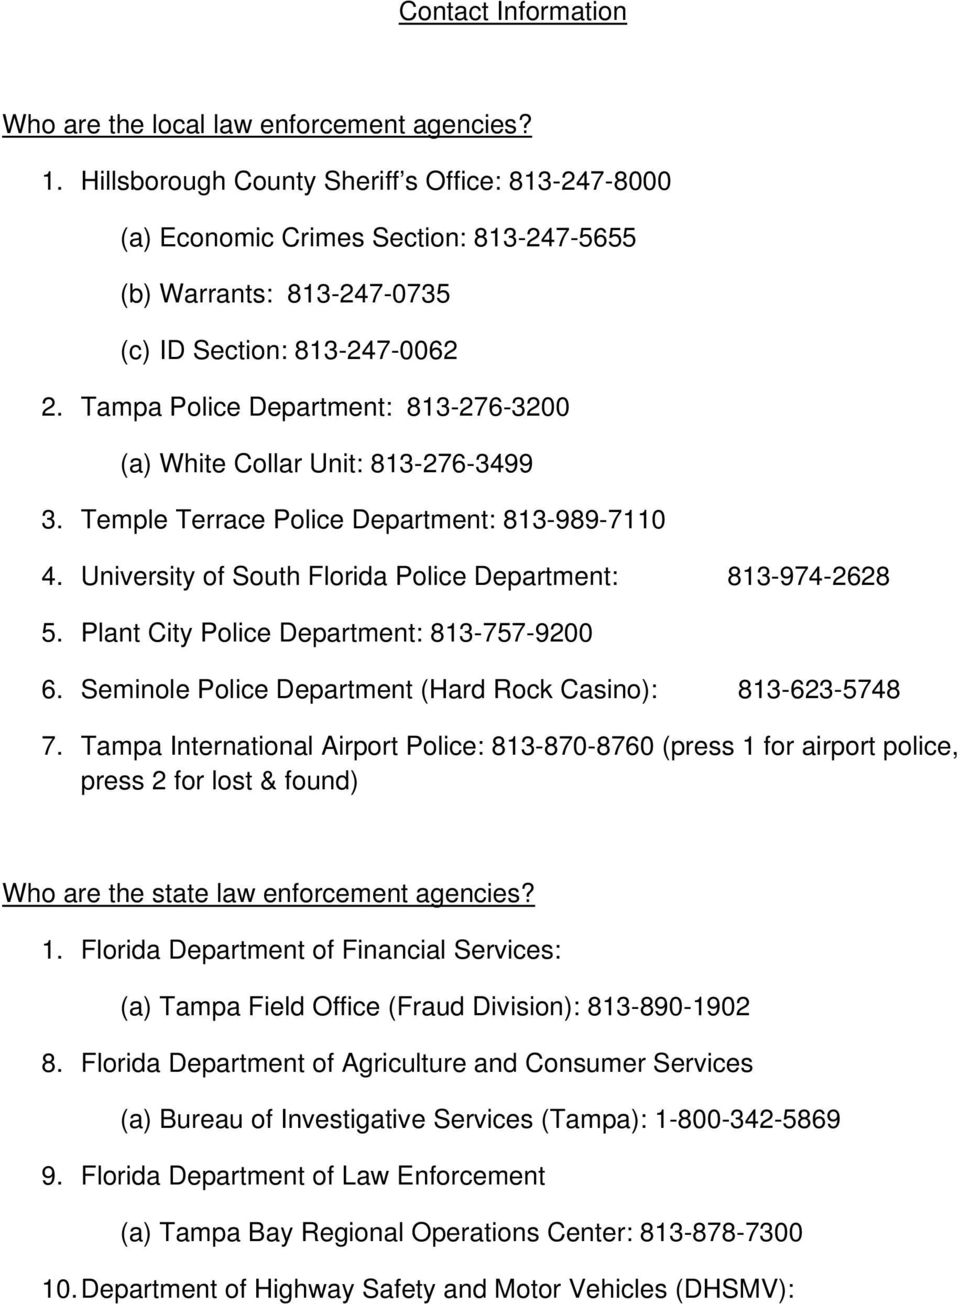 Tampa Police Department: 813-276-3200 (a) White Collar Unit: 813-276-3499 3. Temple Terrace Police Department: 813-989-7110 4. University of South Florida Police Department: 813-974-2628 5.